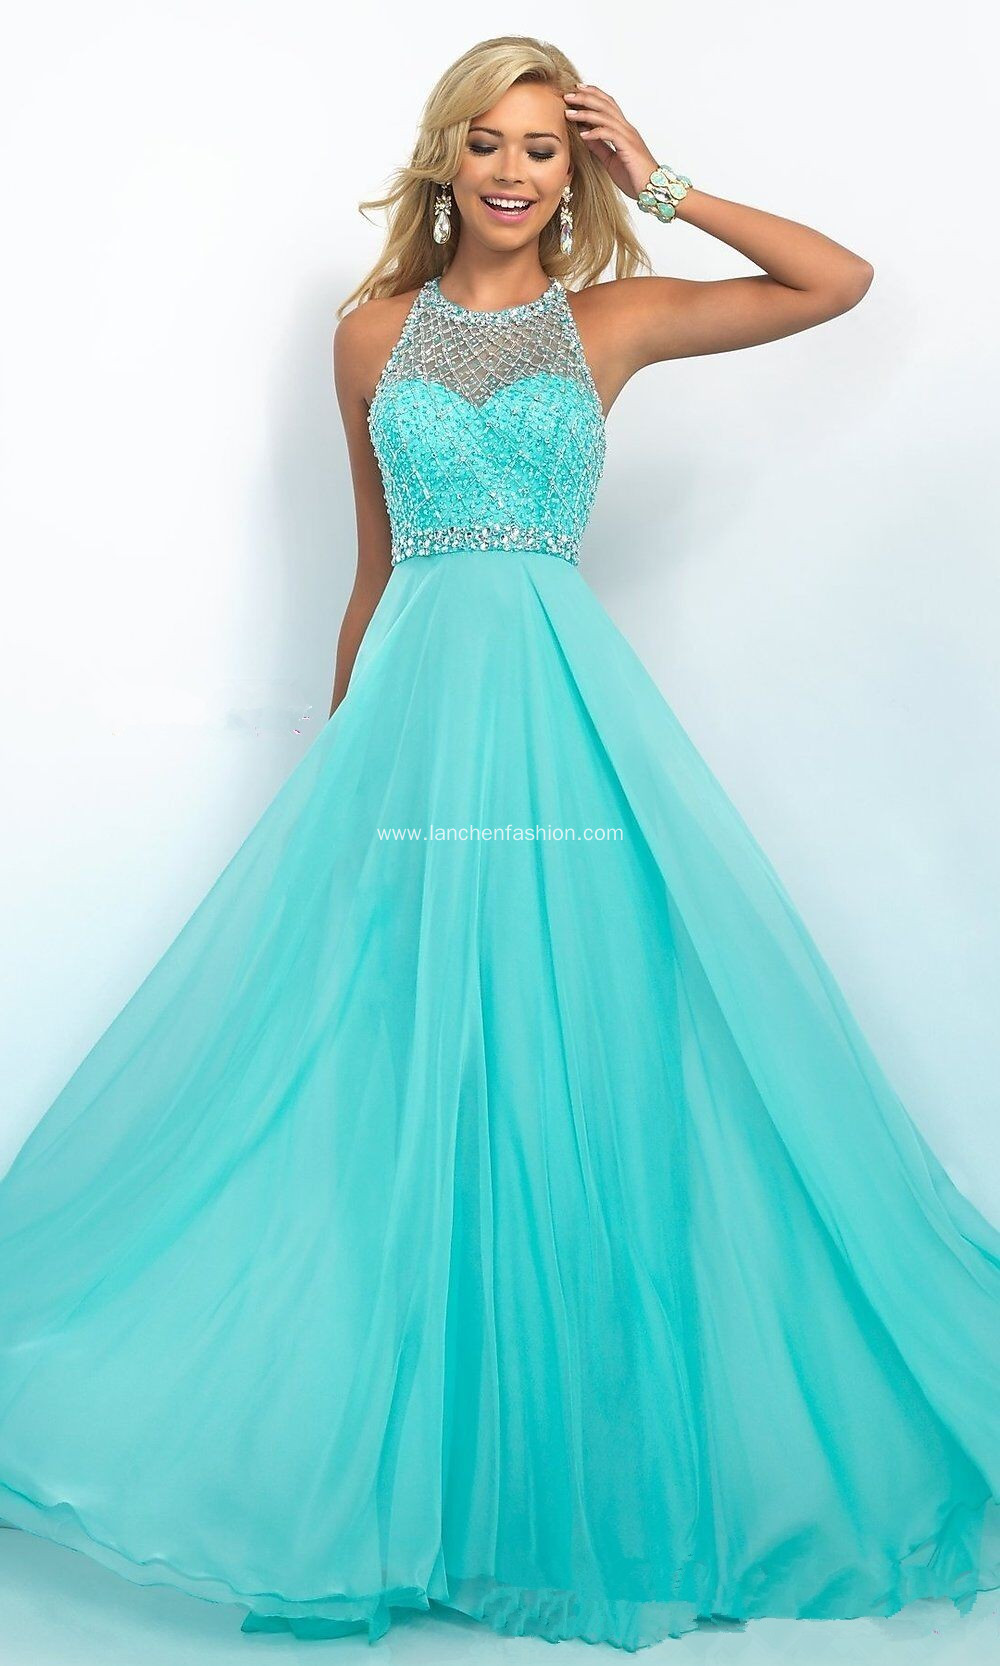 Aqua Illusion Beaded Prom Dress